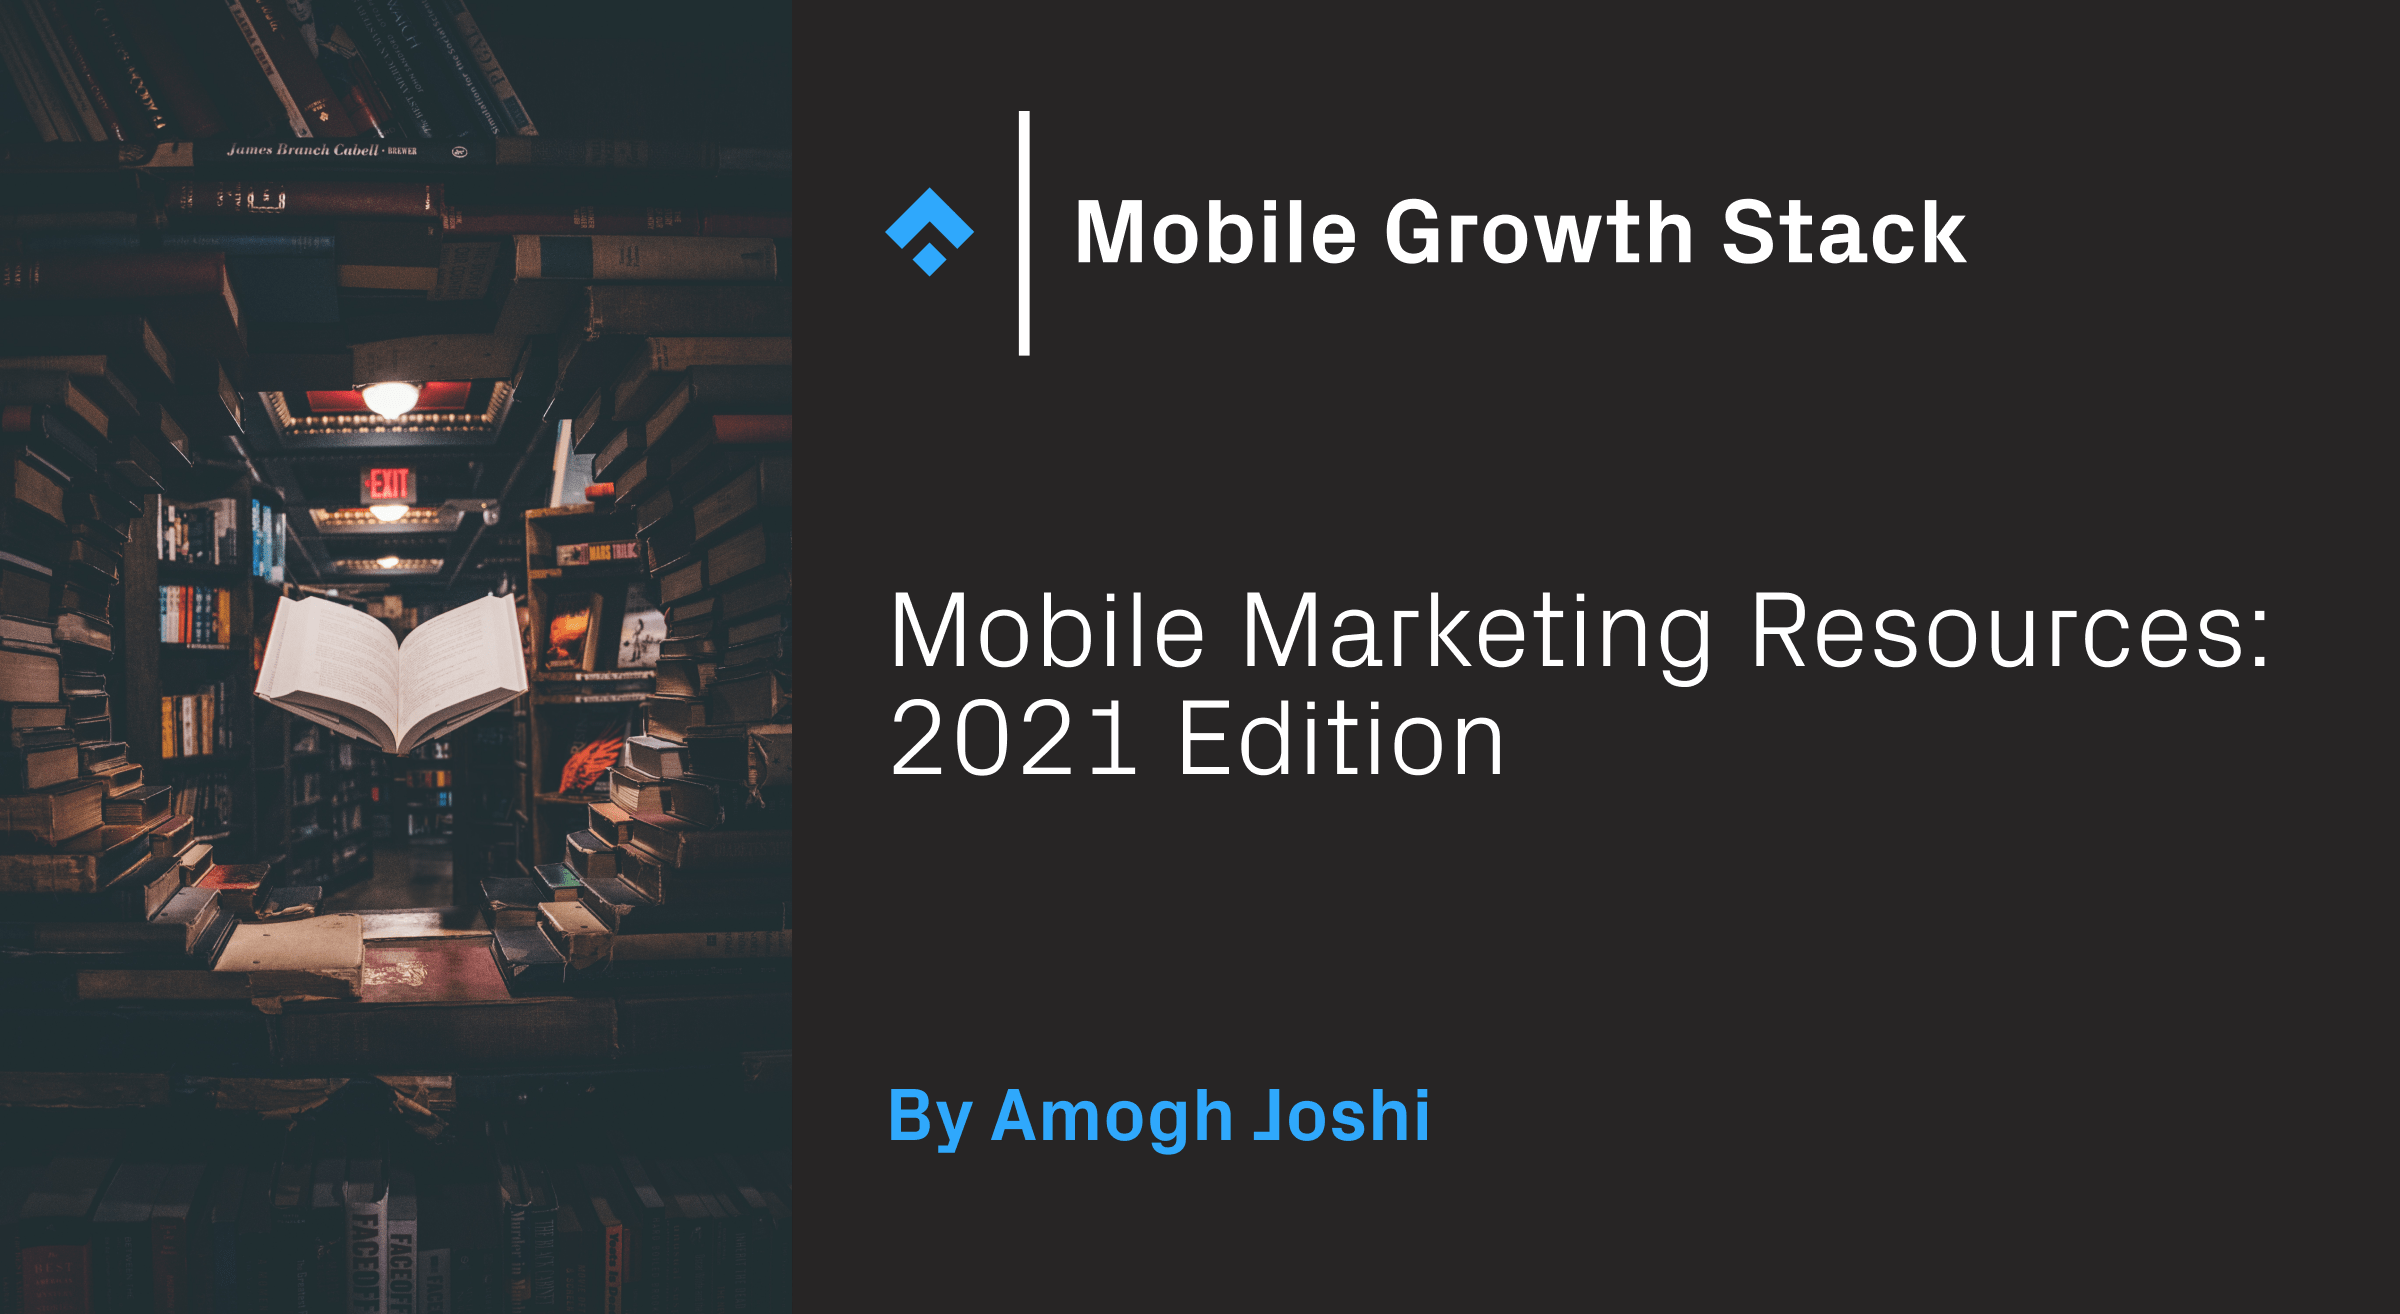 Mobile Marketing Resources: 2021 Edition